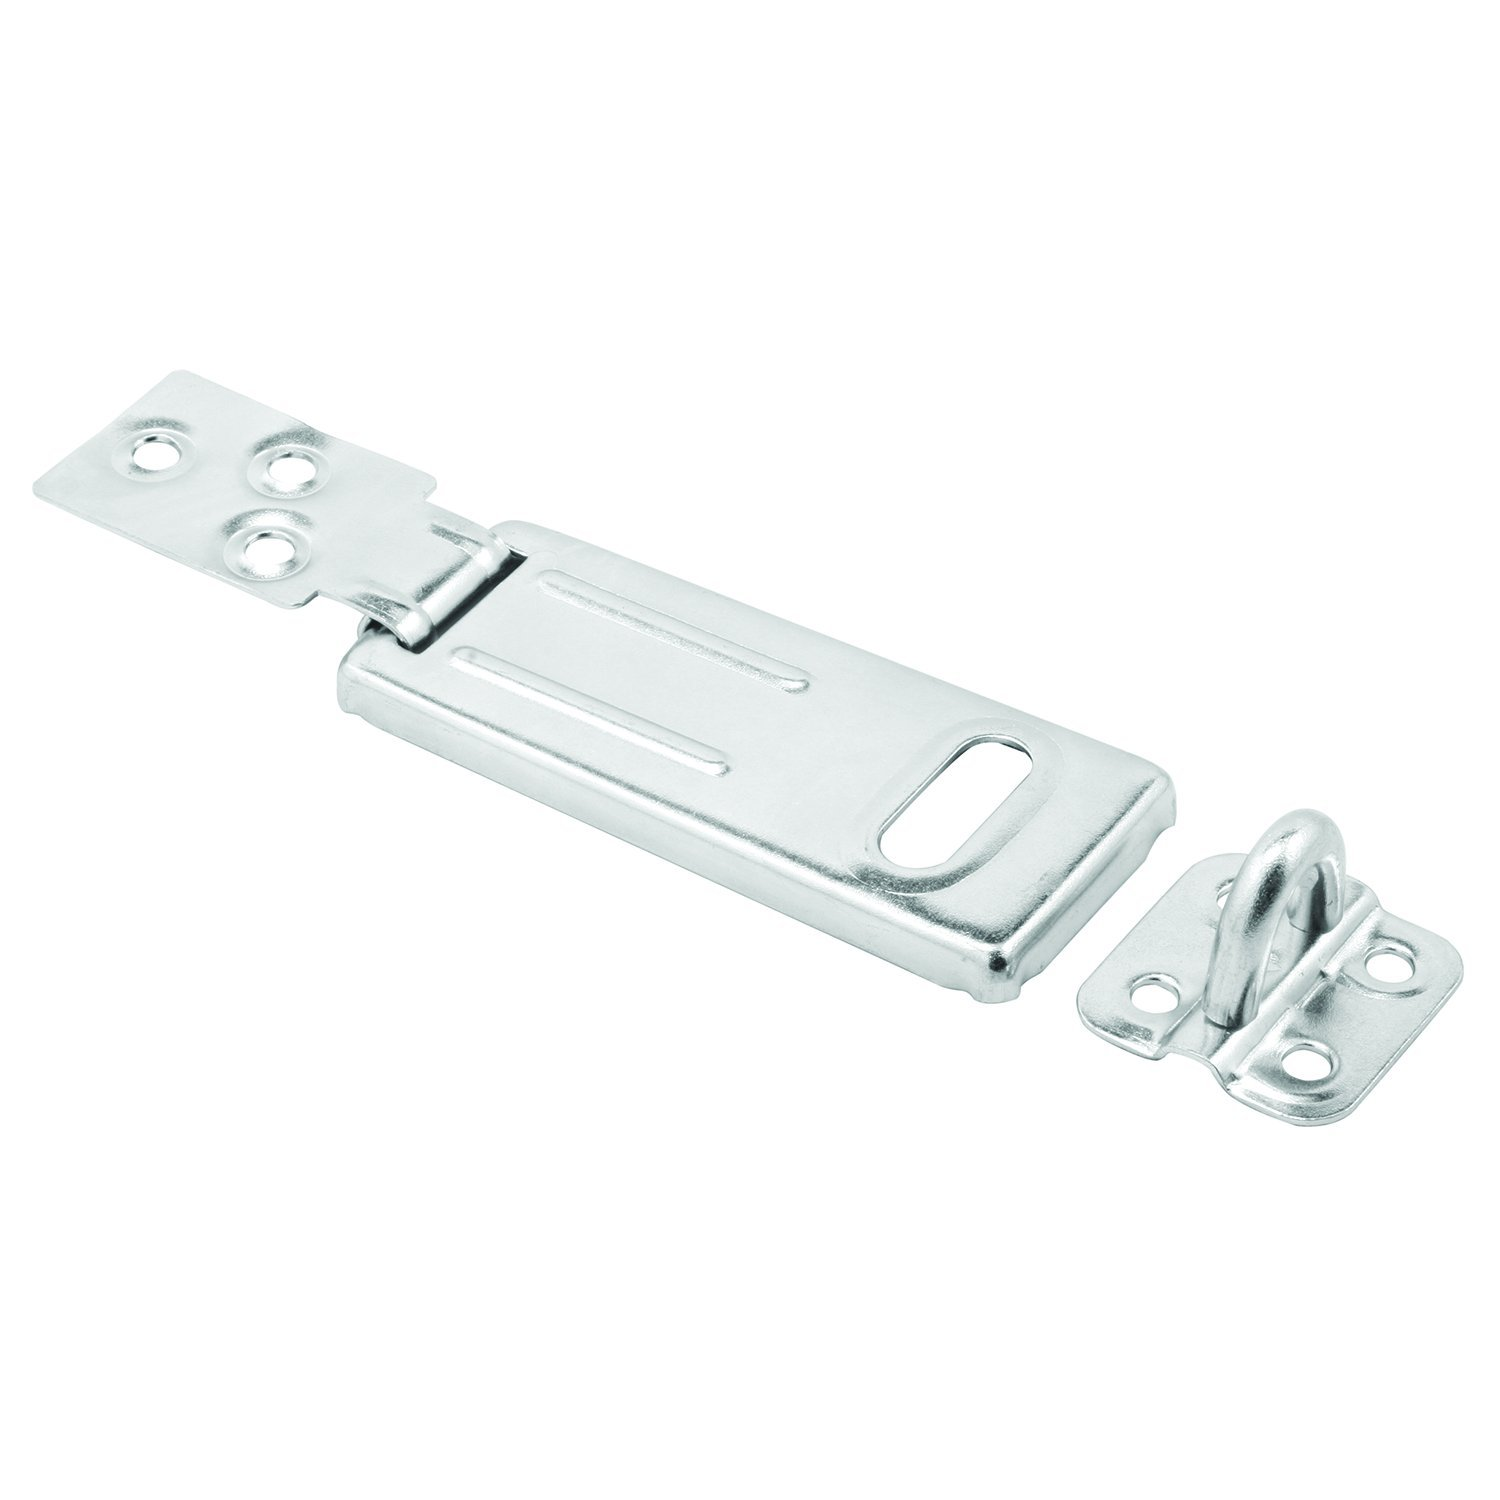 Prime Line MP5053 Safety Hasp 3 1 2 Inch Steel Construction Zinc Plated Finish Heavy Duty Pack of 1